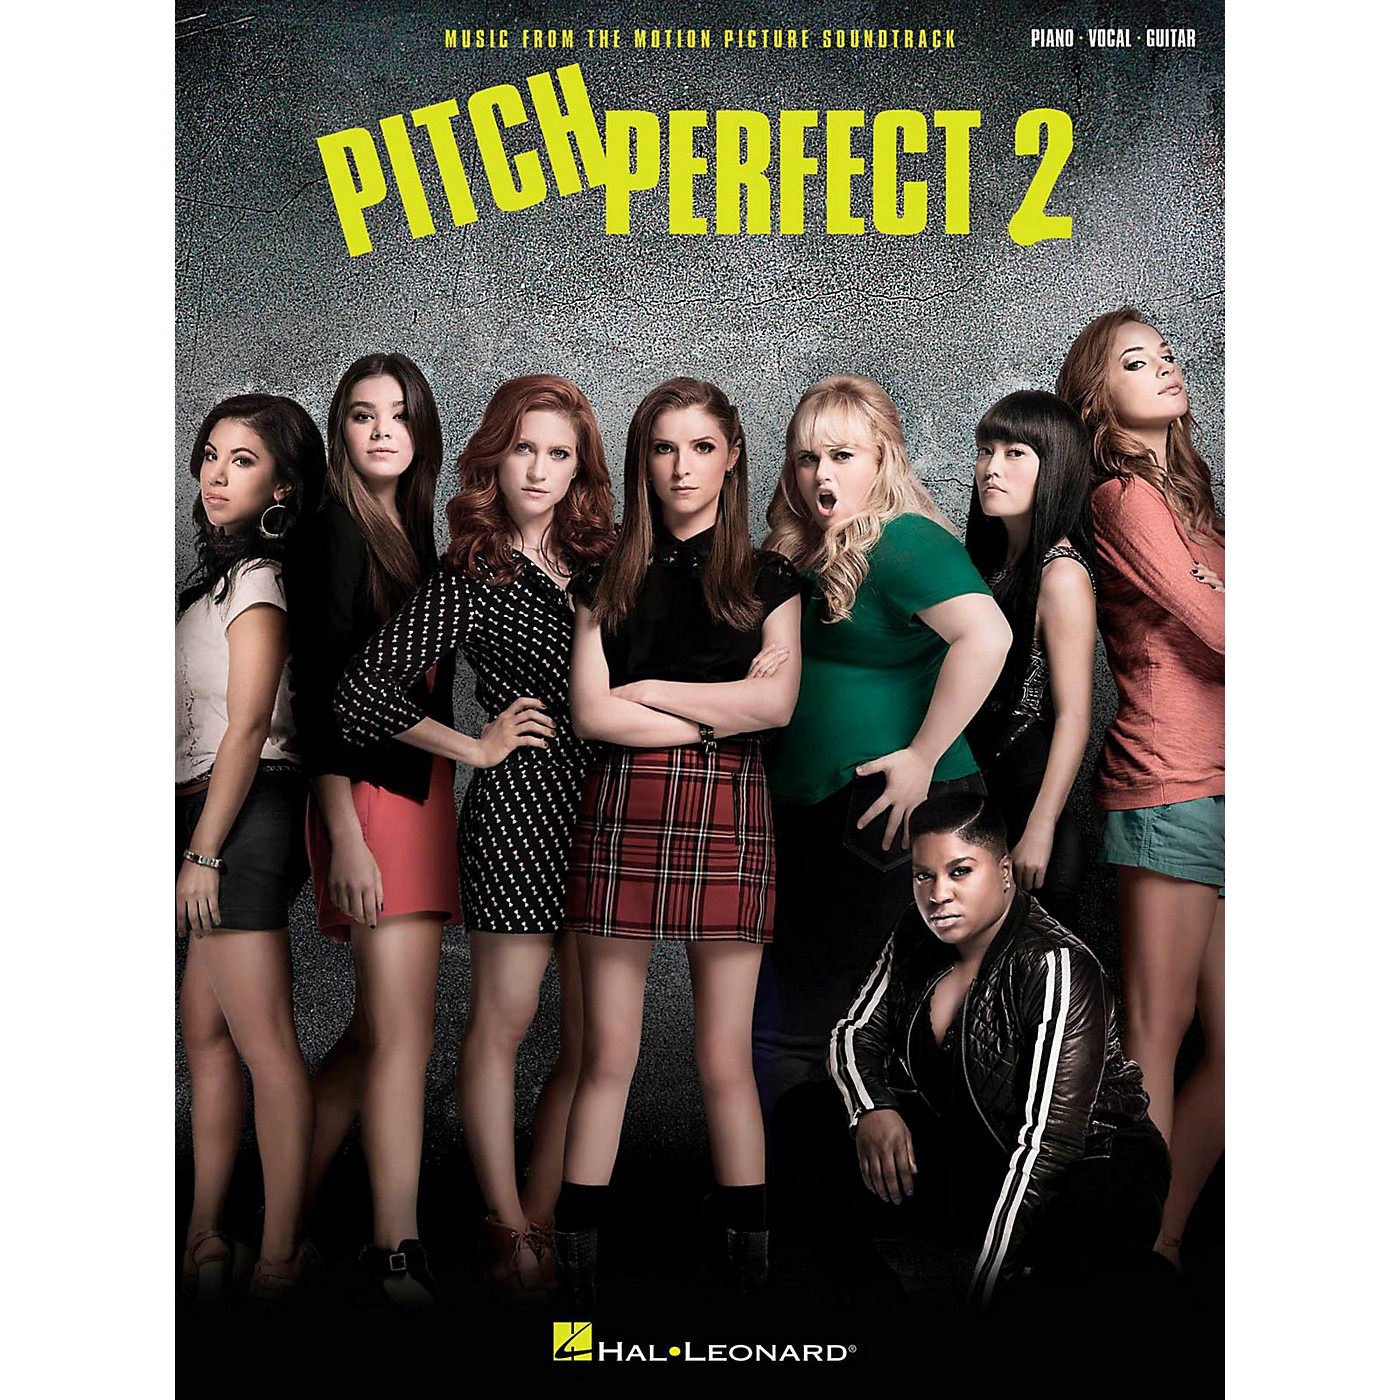 Hal Leonard Pitch Perfect 2 - Music From The Motion Picture Soundtrack for Piano/Vocal/Guitar thumbnail